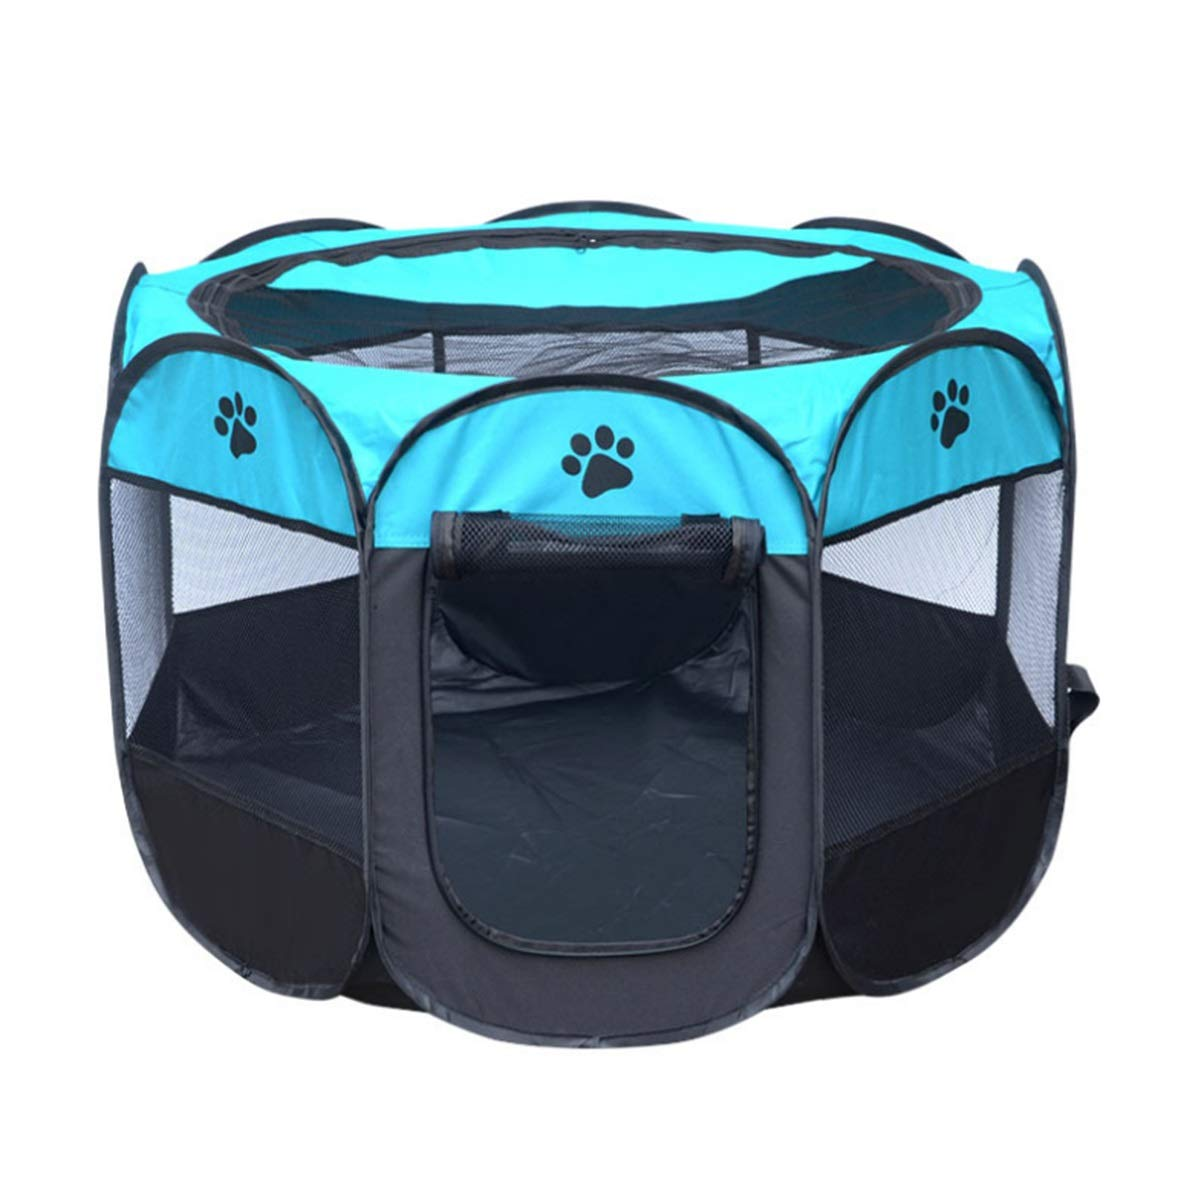 Fishagelo Pet Dog Exercise Kennel Cat Portable Foldable Pen Dog Kennel House Travel Tent Pet Supplies Fishagelo